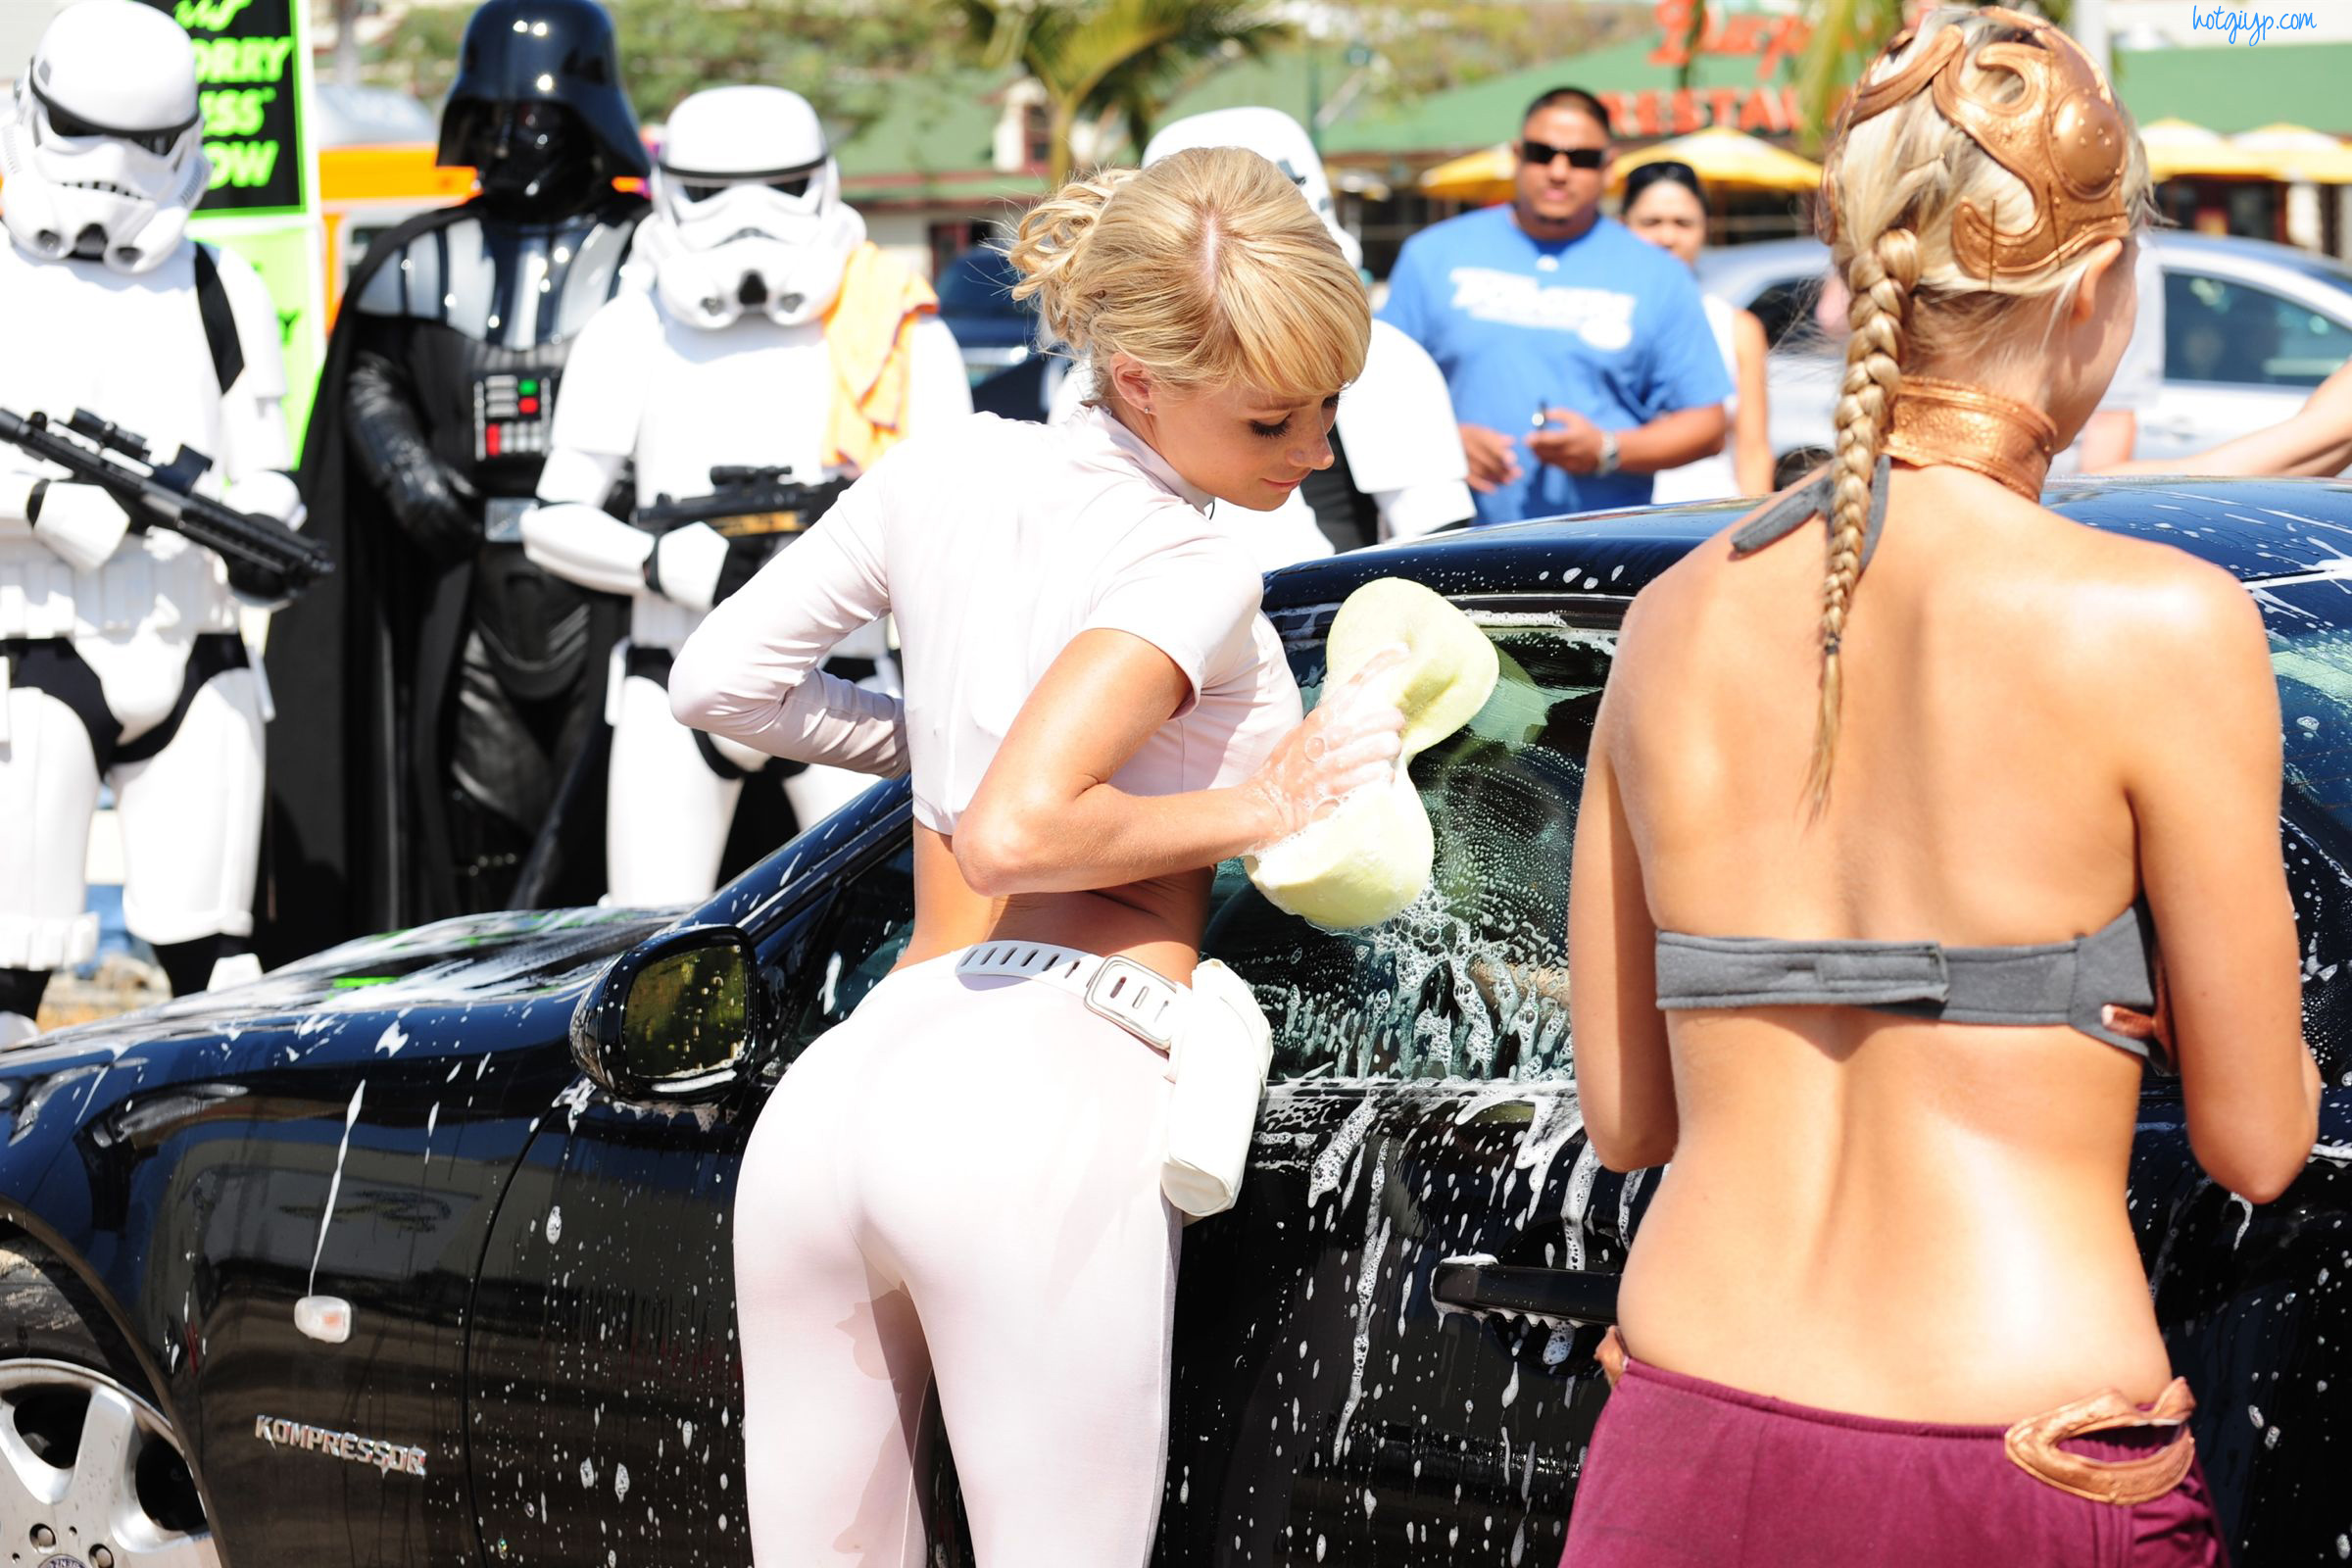 Star wars pussy image xxx pictures